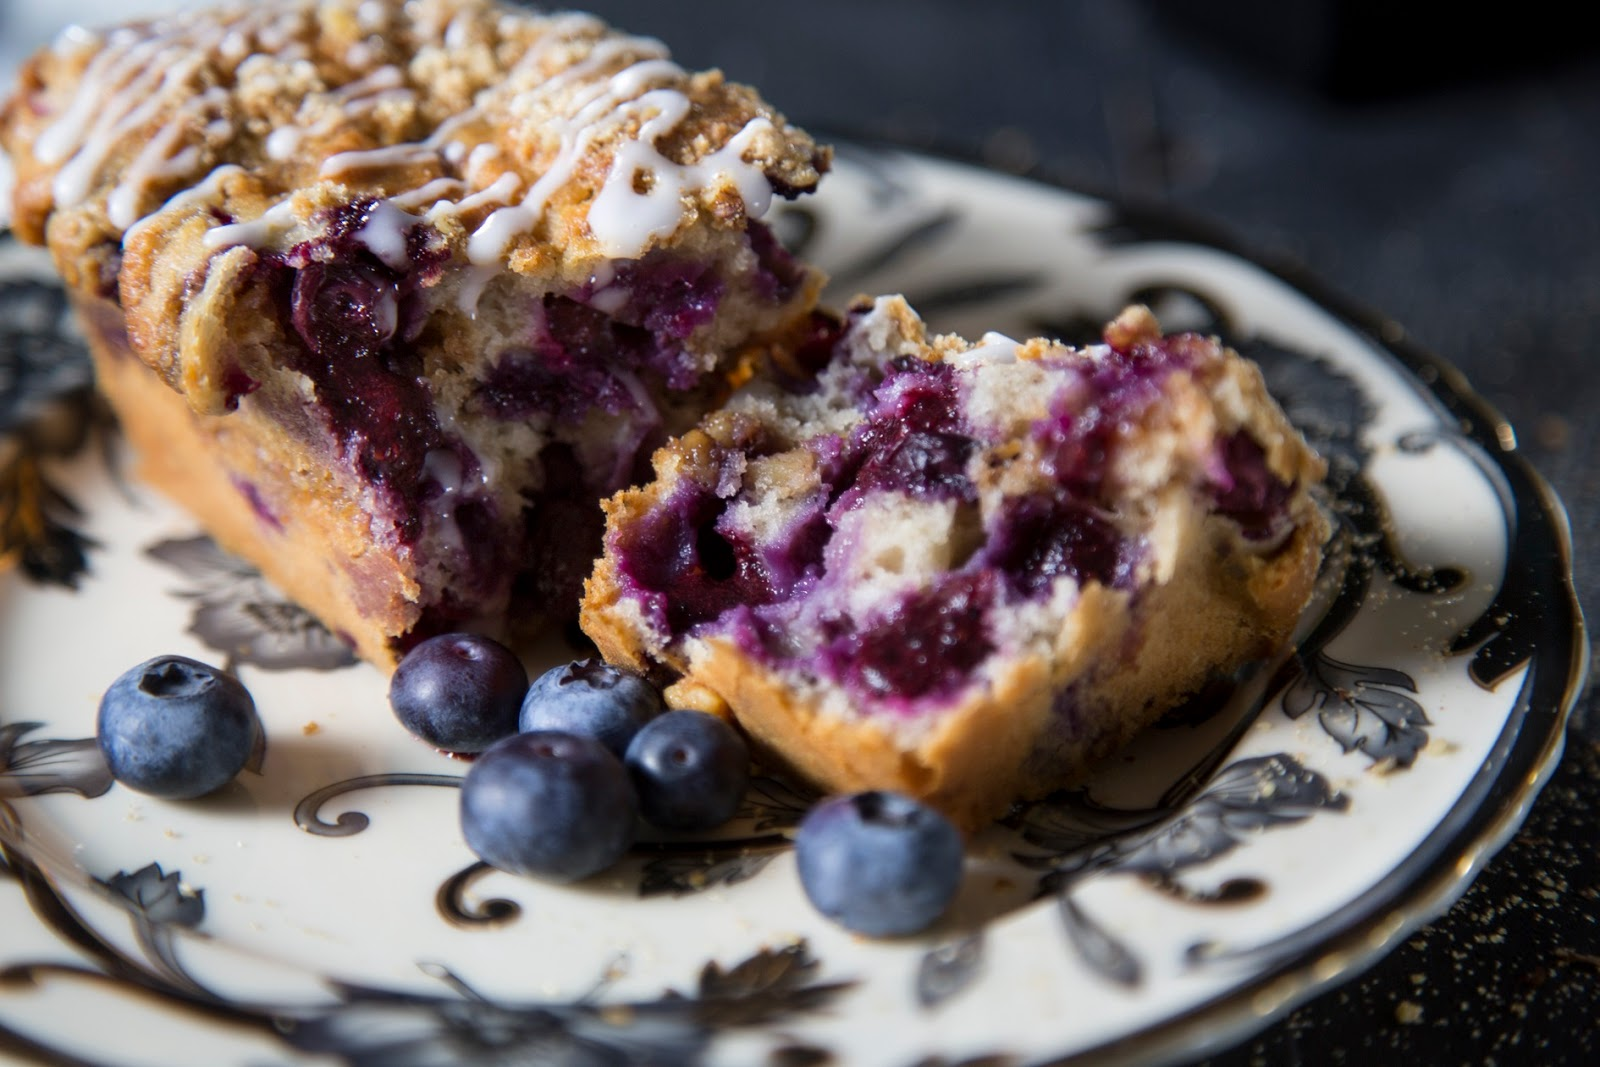 Blueberry And Walnut Cake: Bursting With Flavour